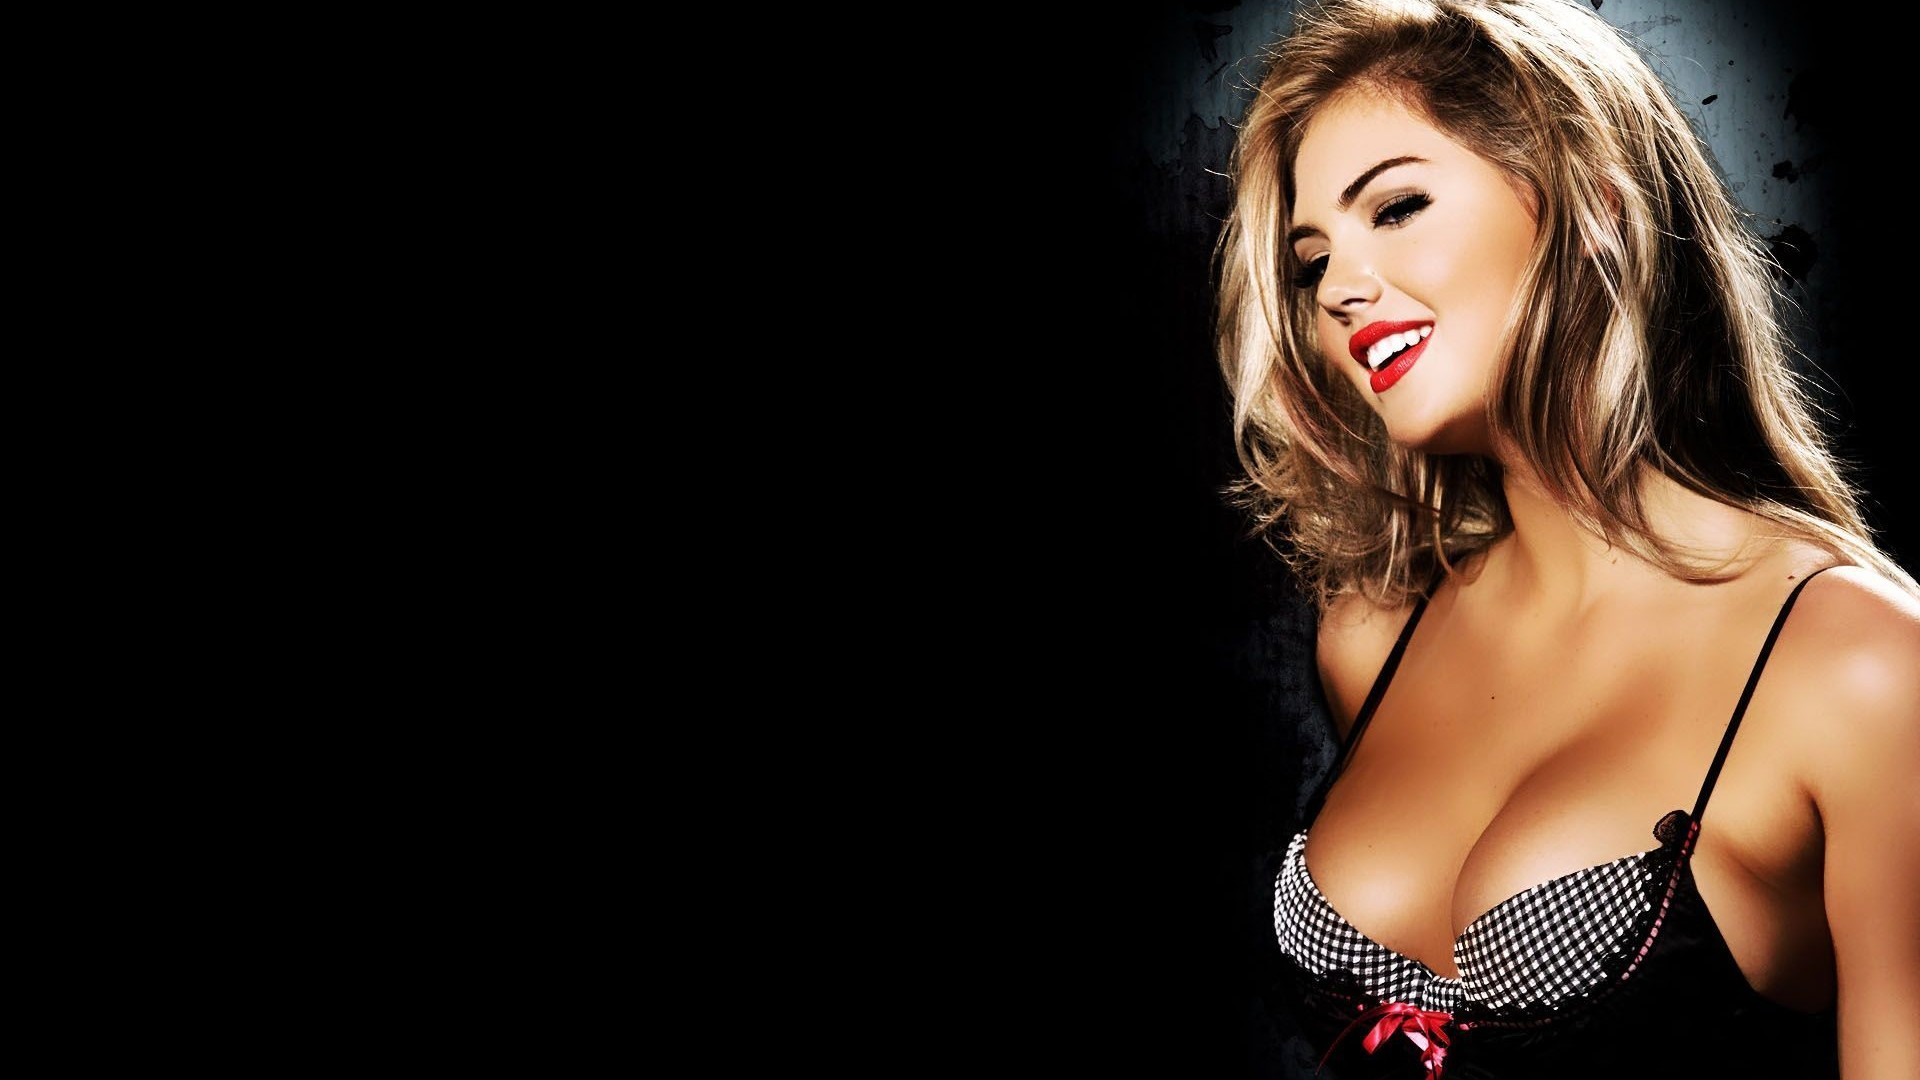 Free Love Hot Wallpaper : Kate Upton Wallpapers, Pictures, Images